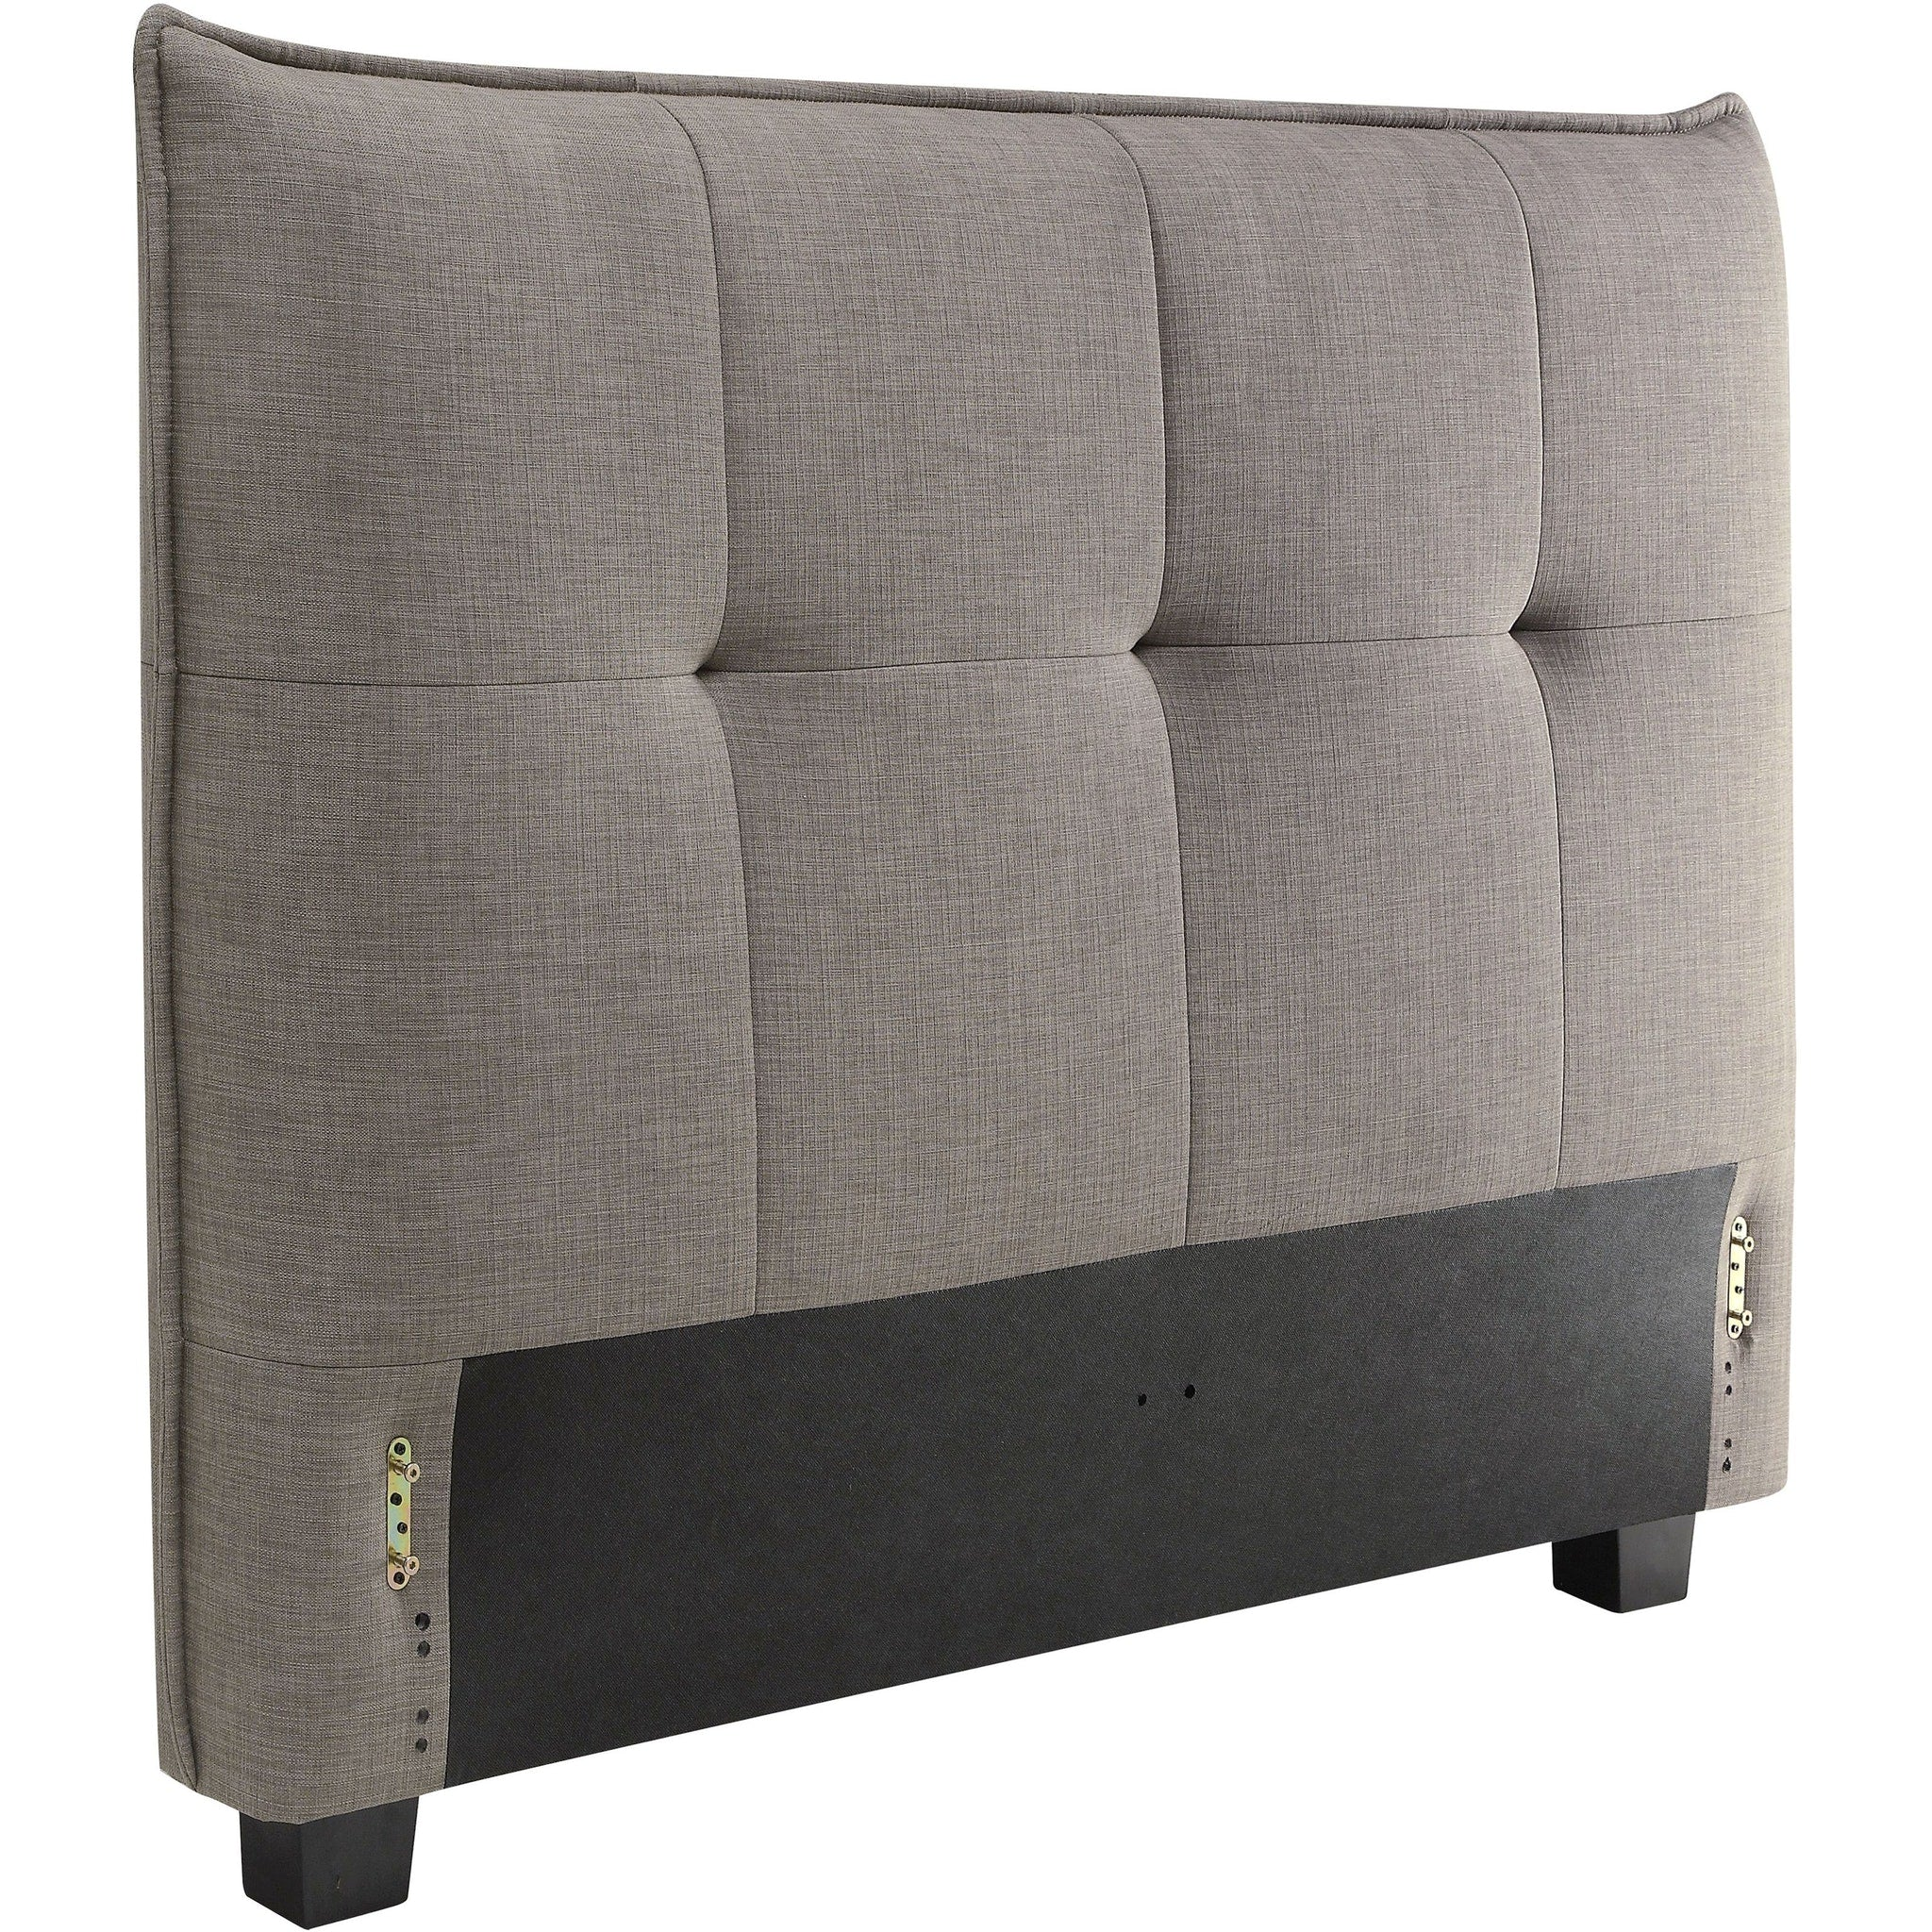 Adona Queen-Size Upholstered Headboard in Dolphin Linen